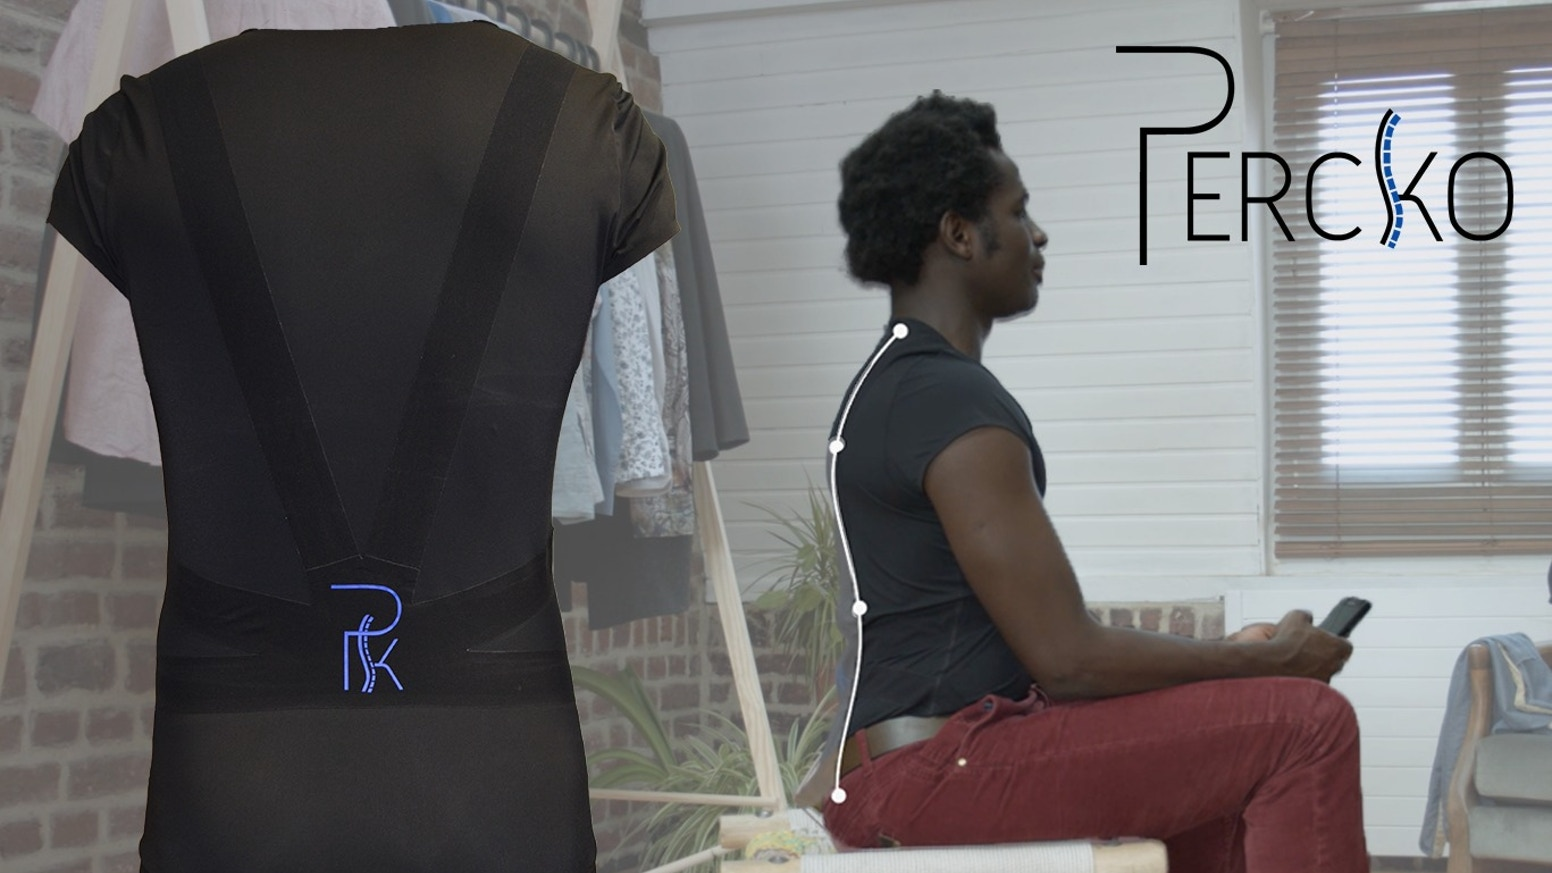 Percko is an undershirt that teaches you how to have the right posture